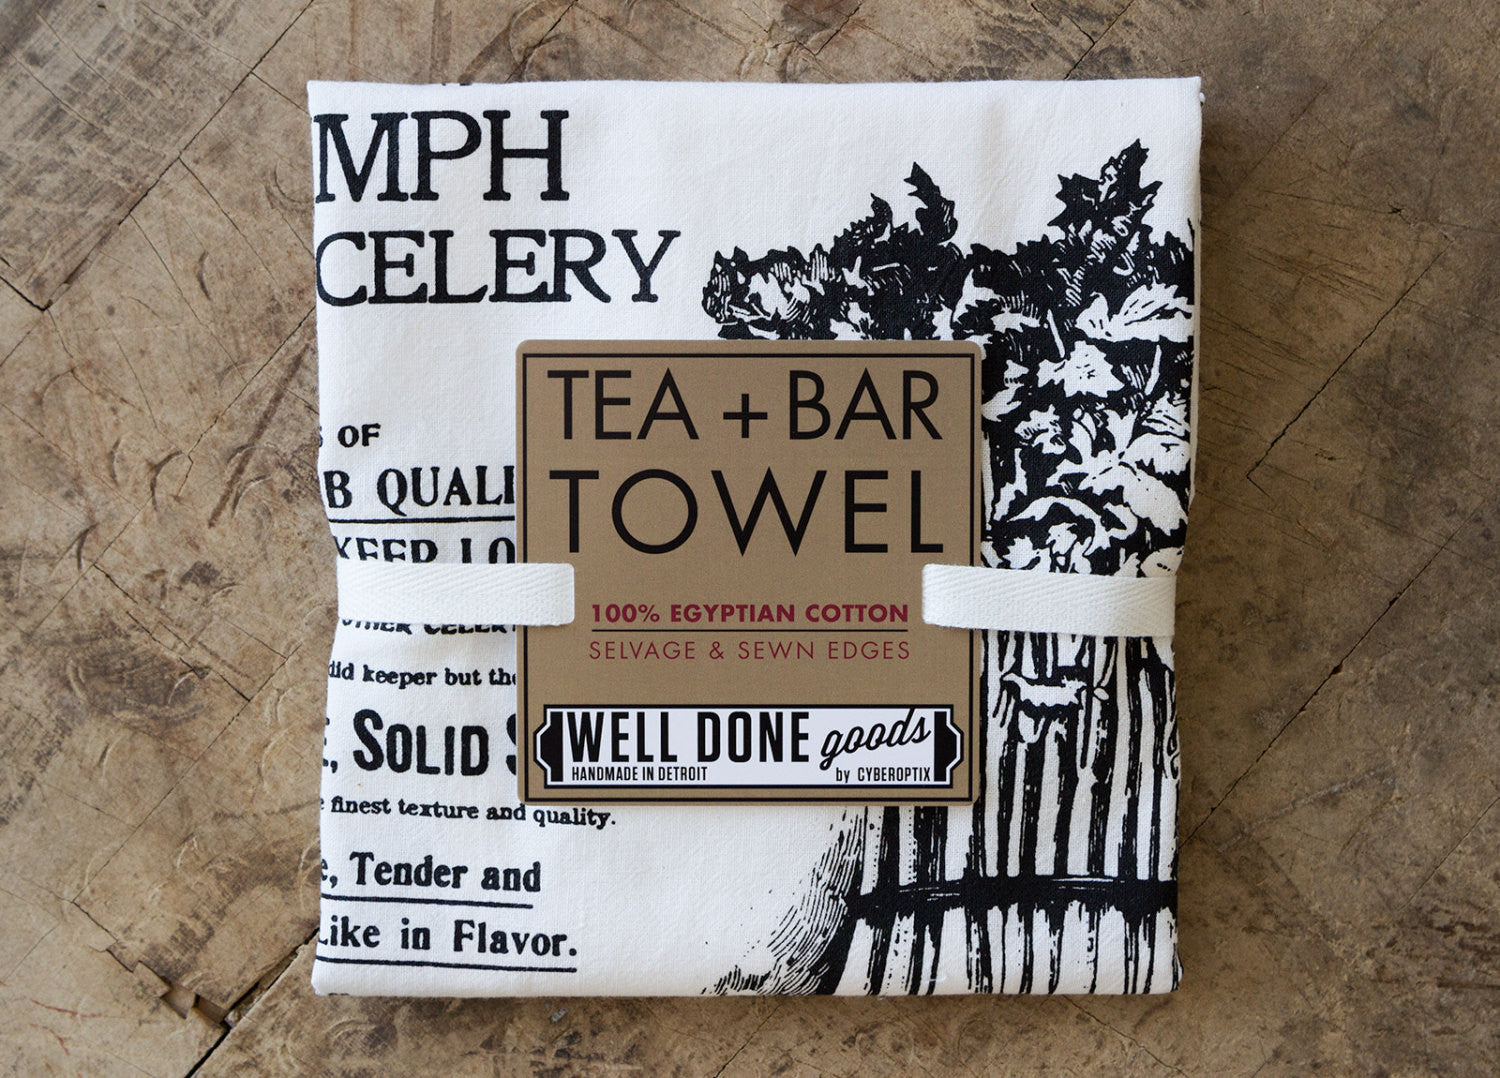 Ferry and Co  Celery Print Flour Sack Towel, Vintage Advertisement - Well  Done Goods, by Cyberoptix